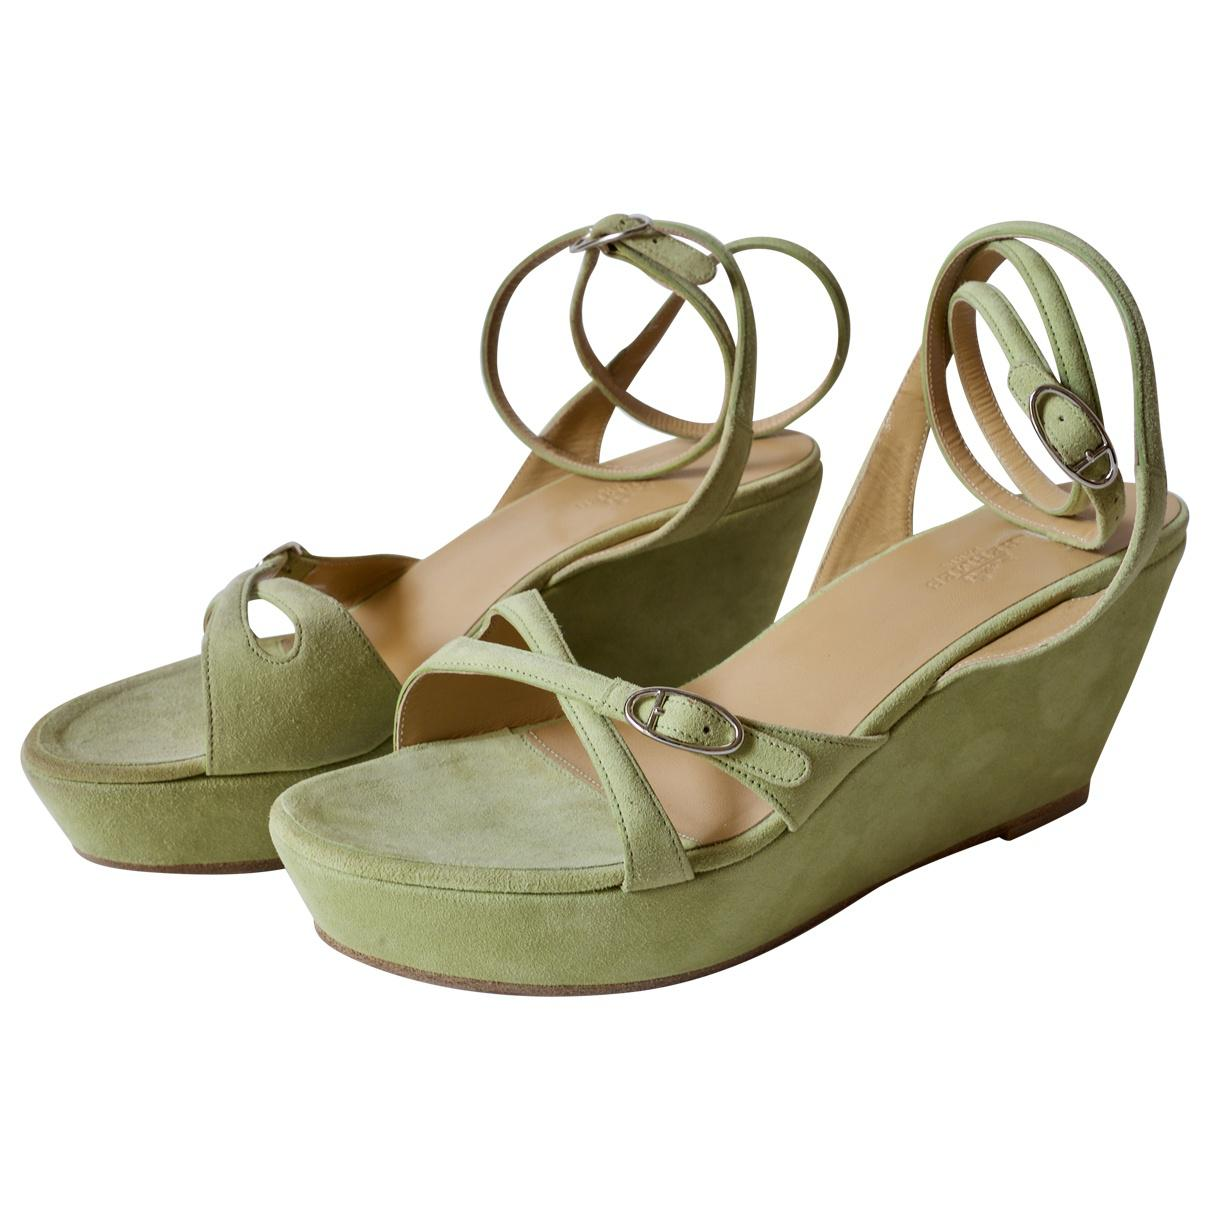 Pre-owned - Sandals Herm 3hxDIzS